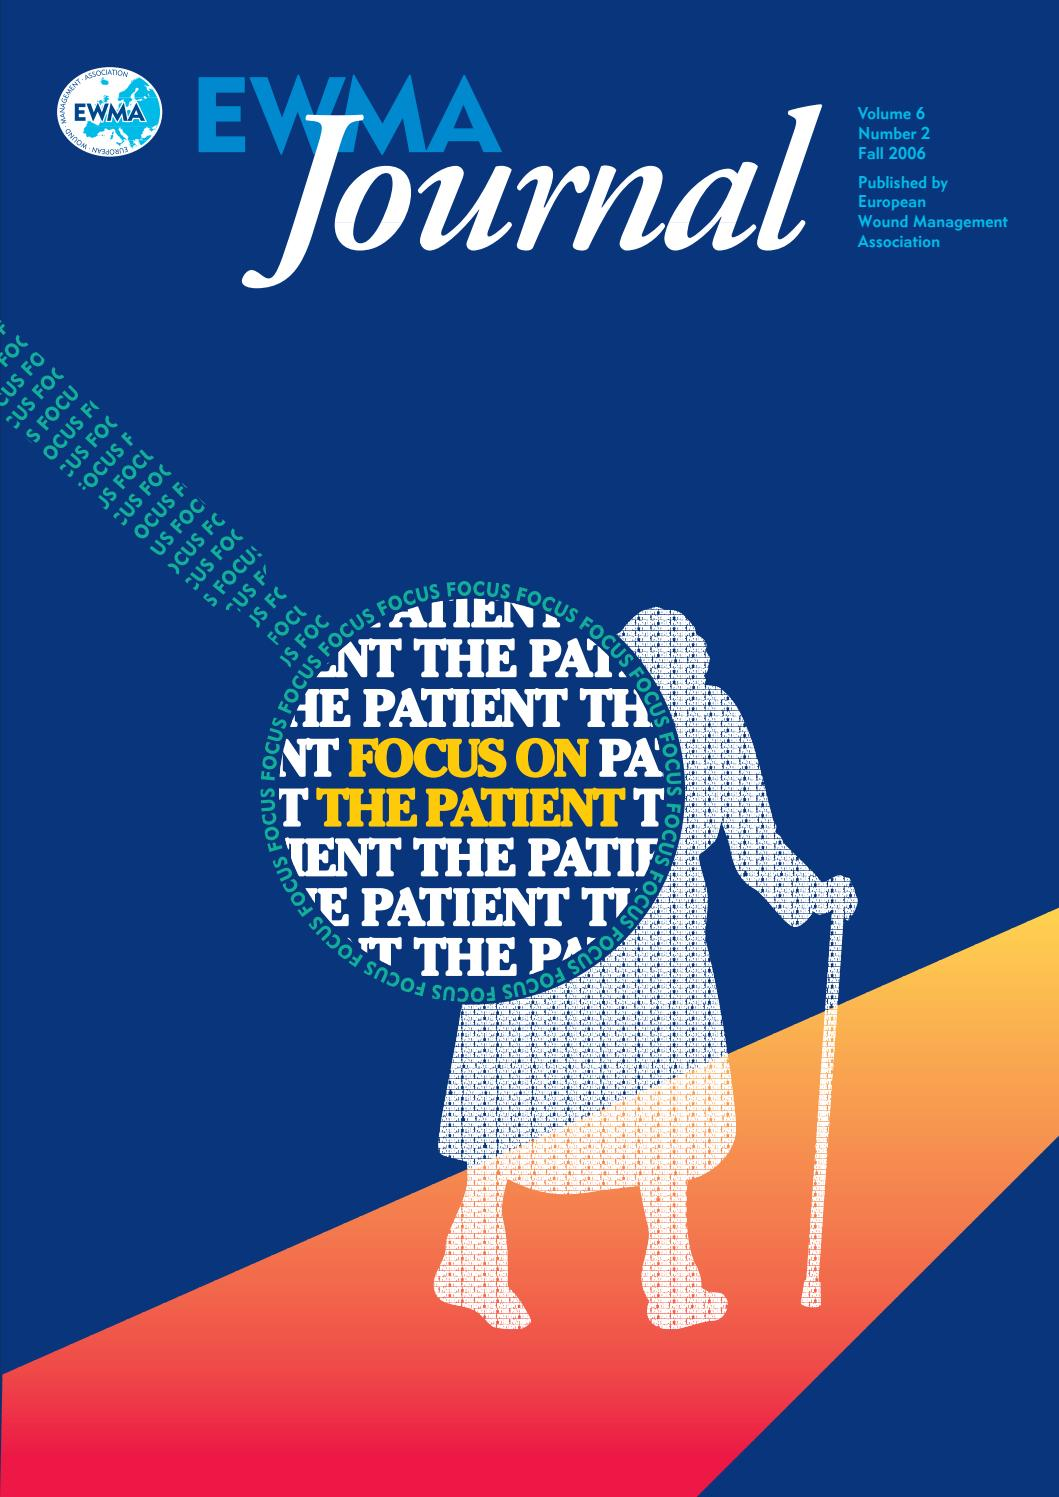 Ewma journal fall 2006 by ewma european wound management association issuu